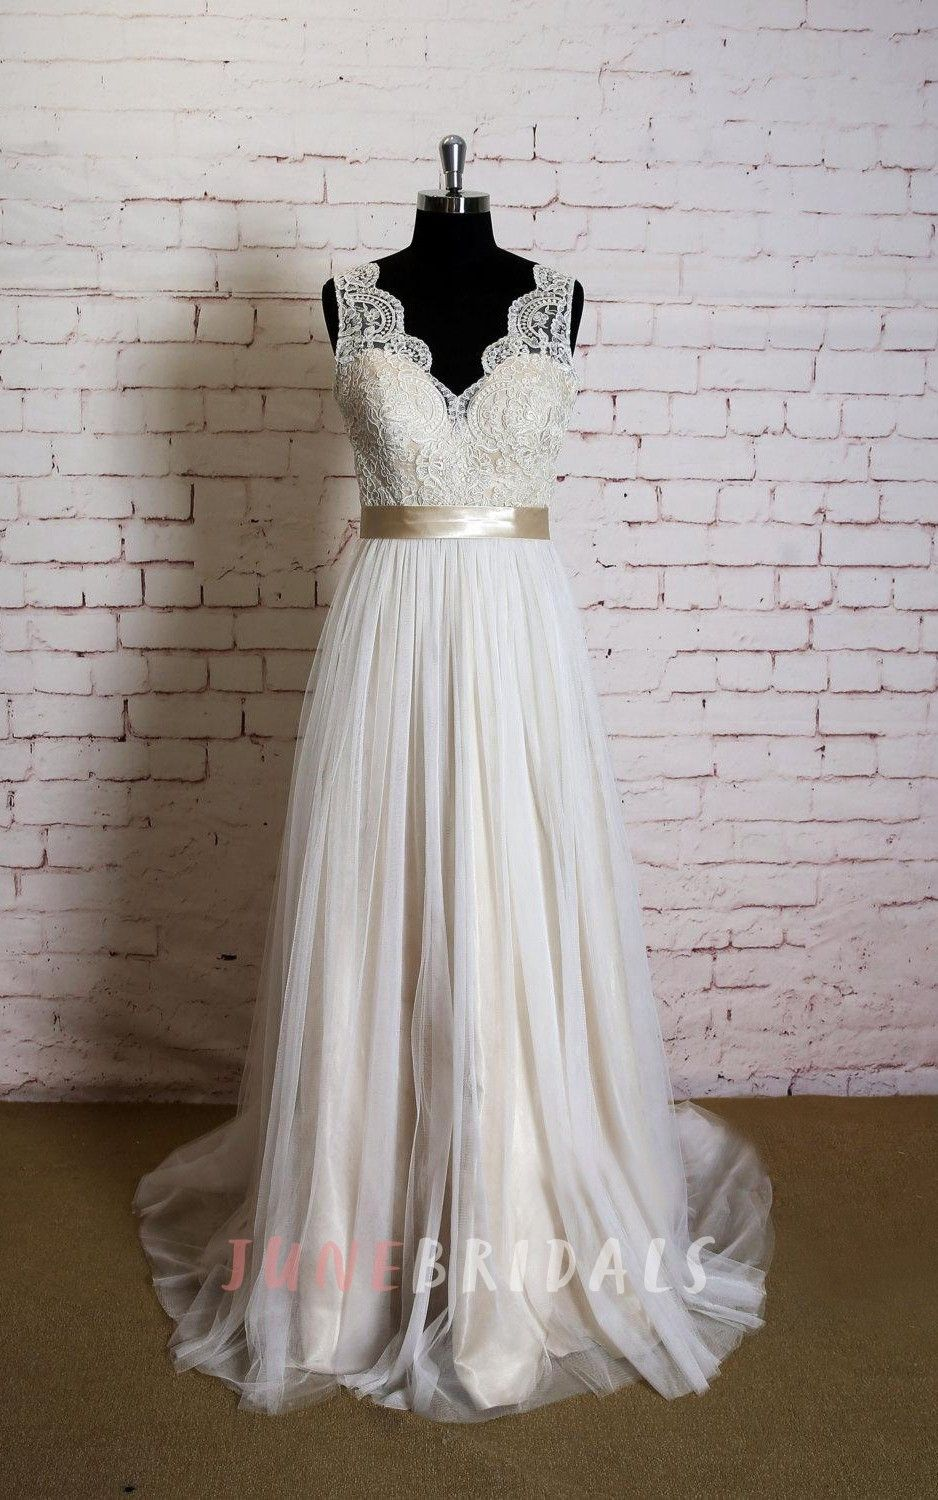 Vneck sleeveless lace top wedding dress with champagne lining